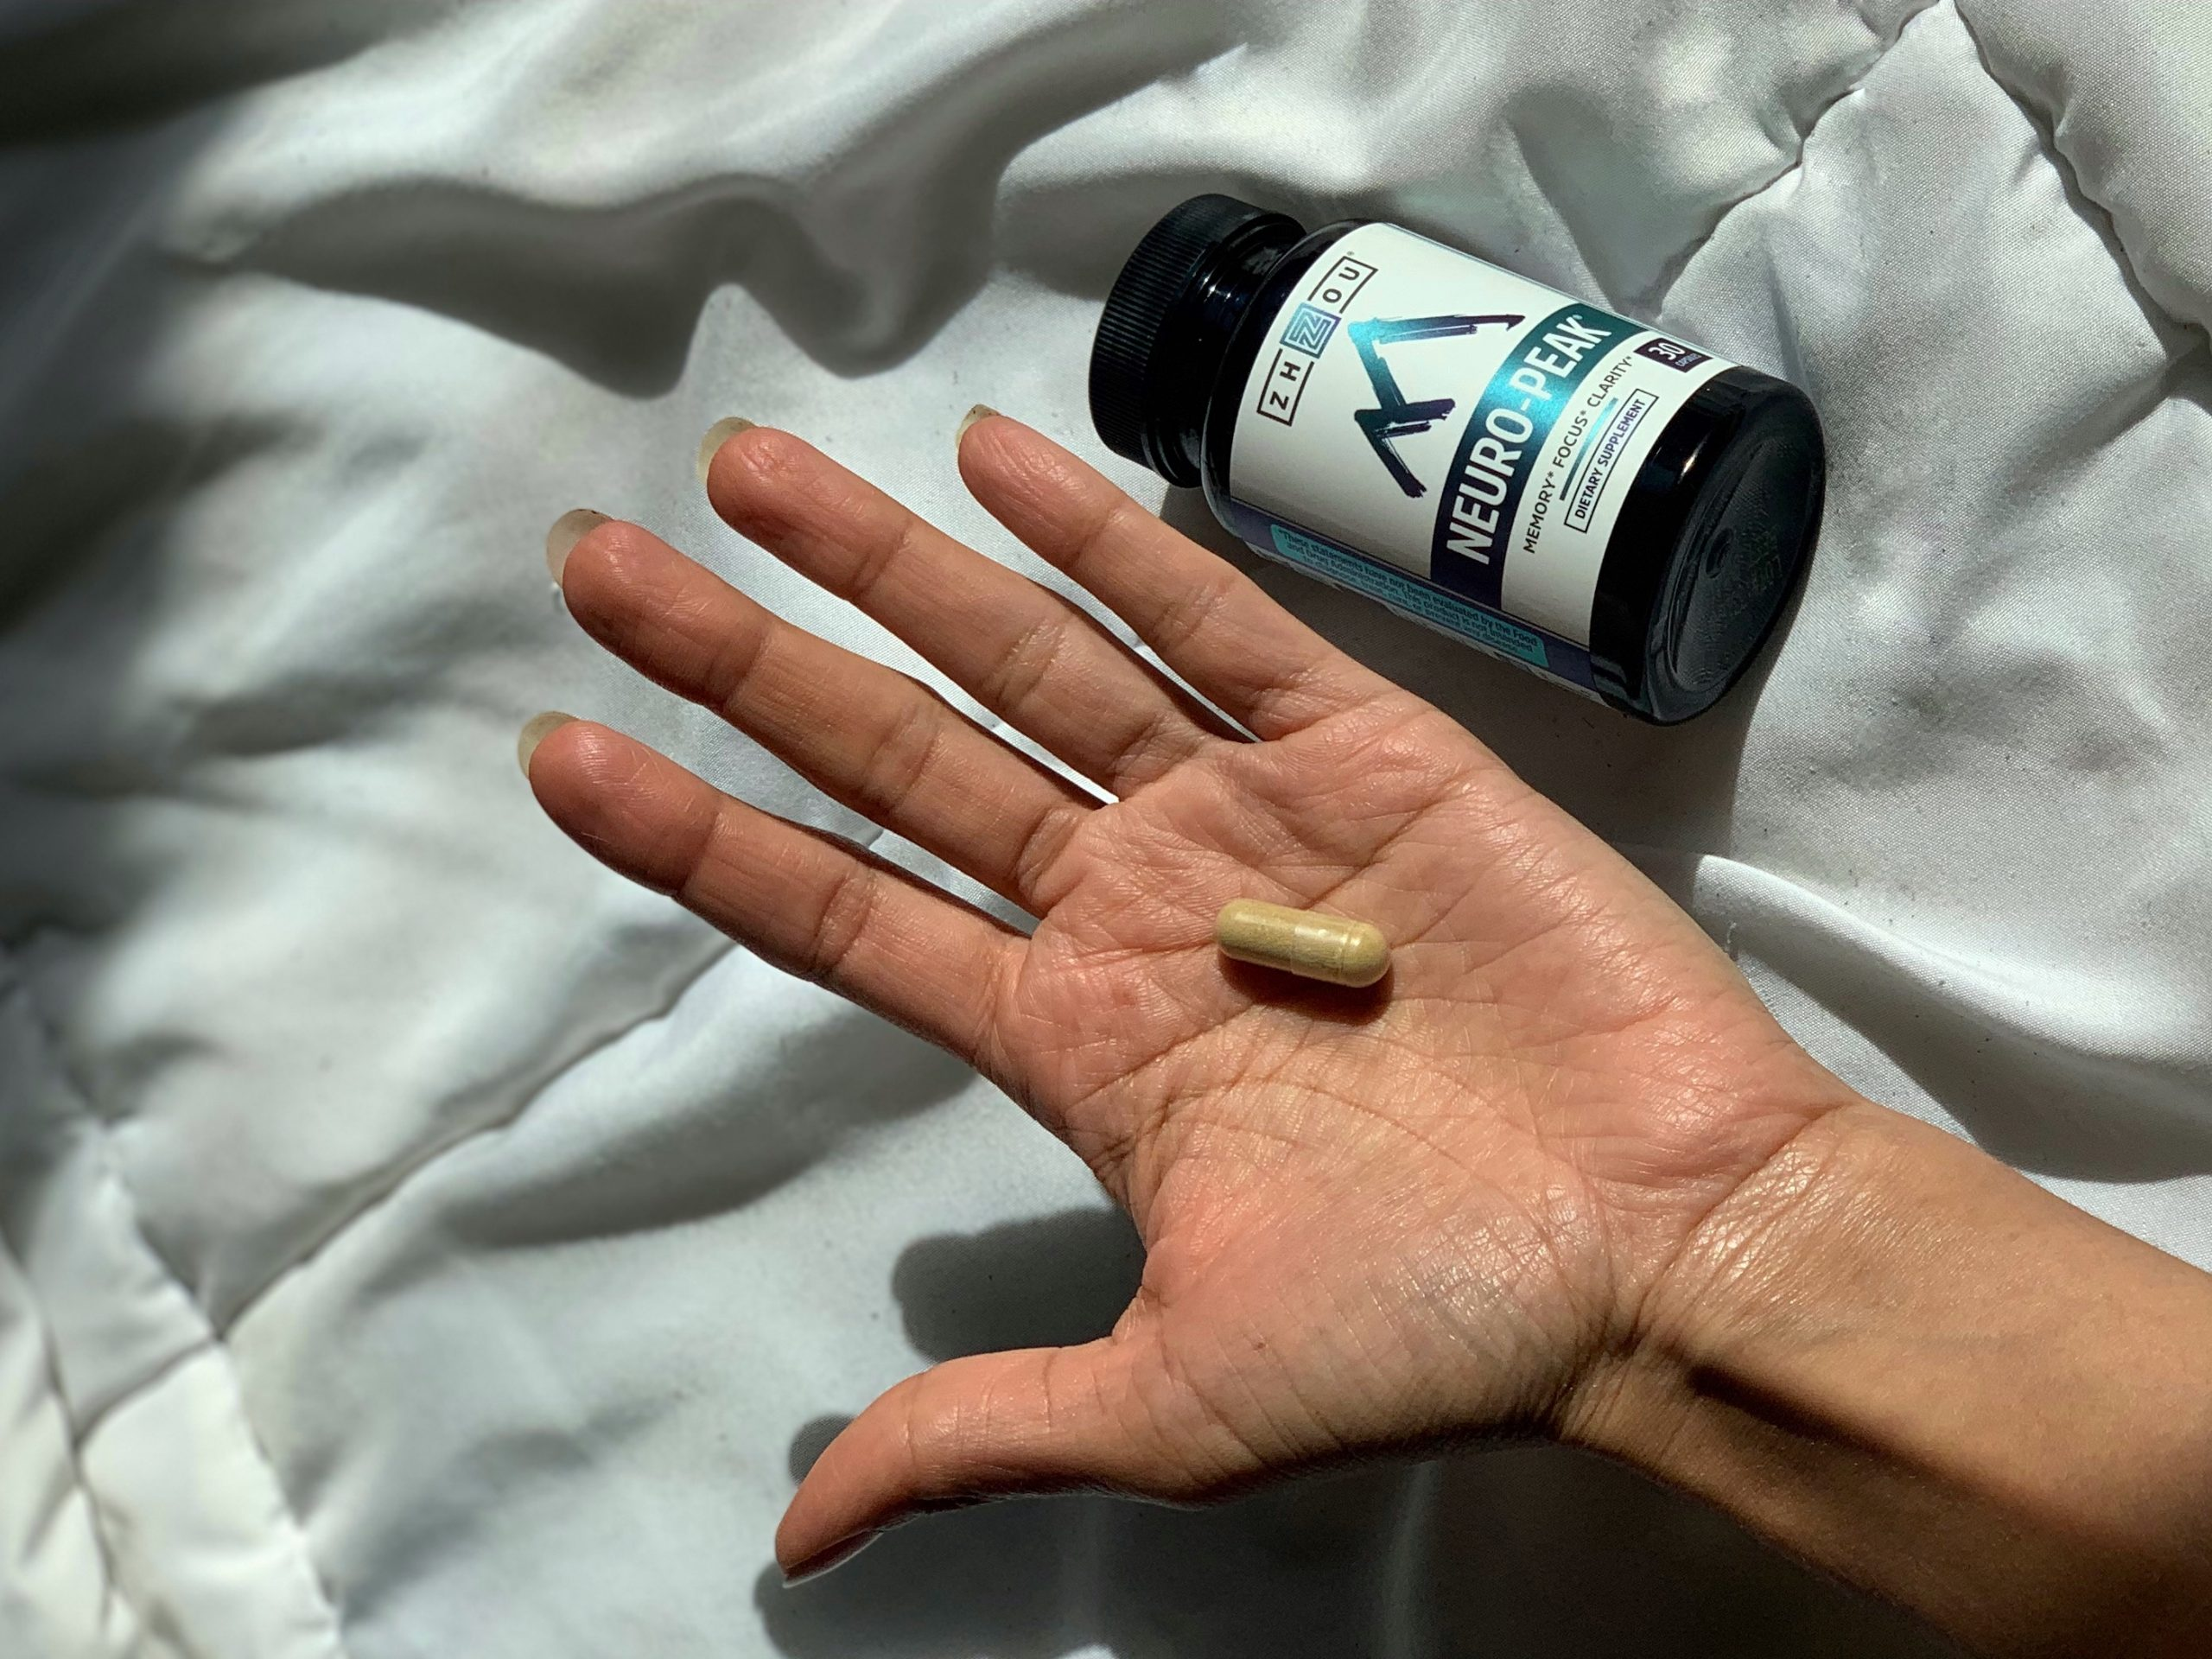 Herbal supplement in a hand Neuro Peak on a bed with white comfy sheets a nootropic for cognitive health.